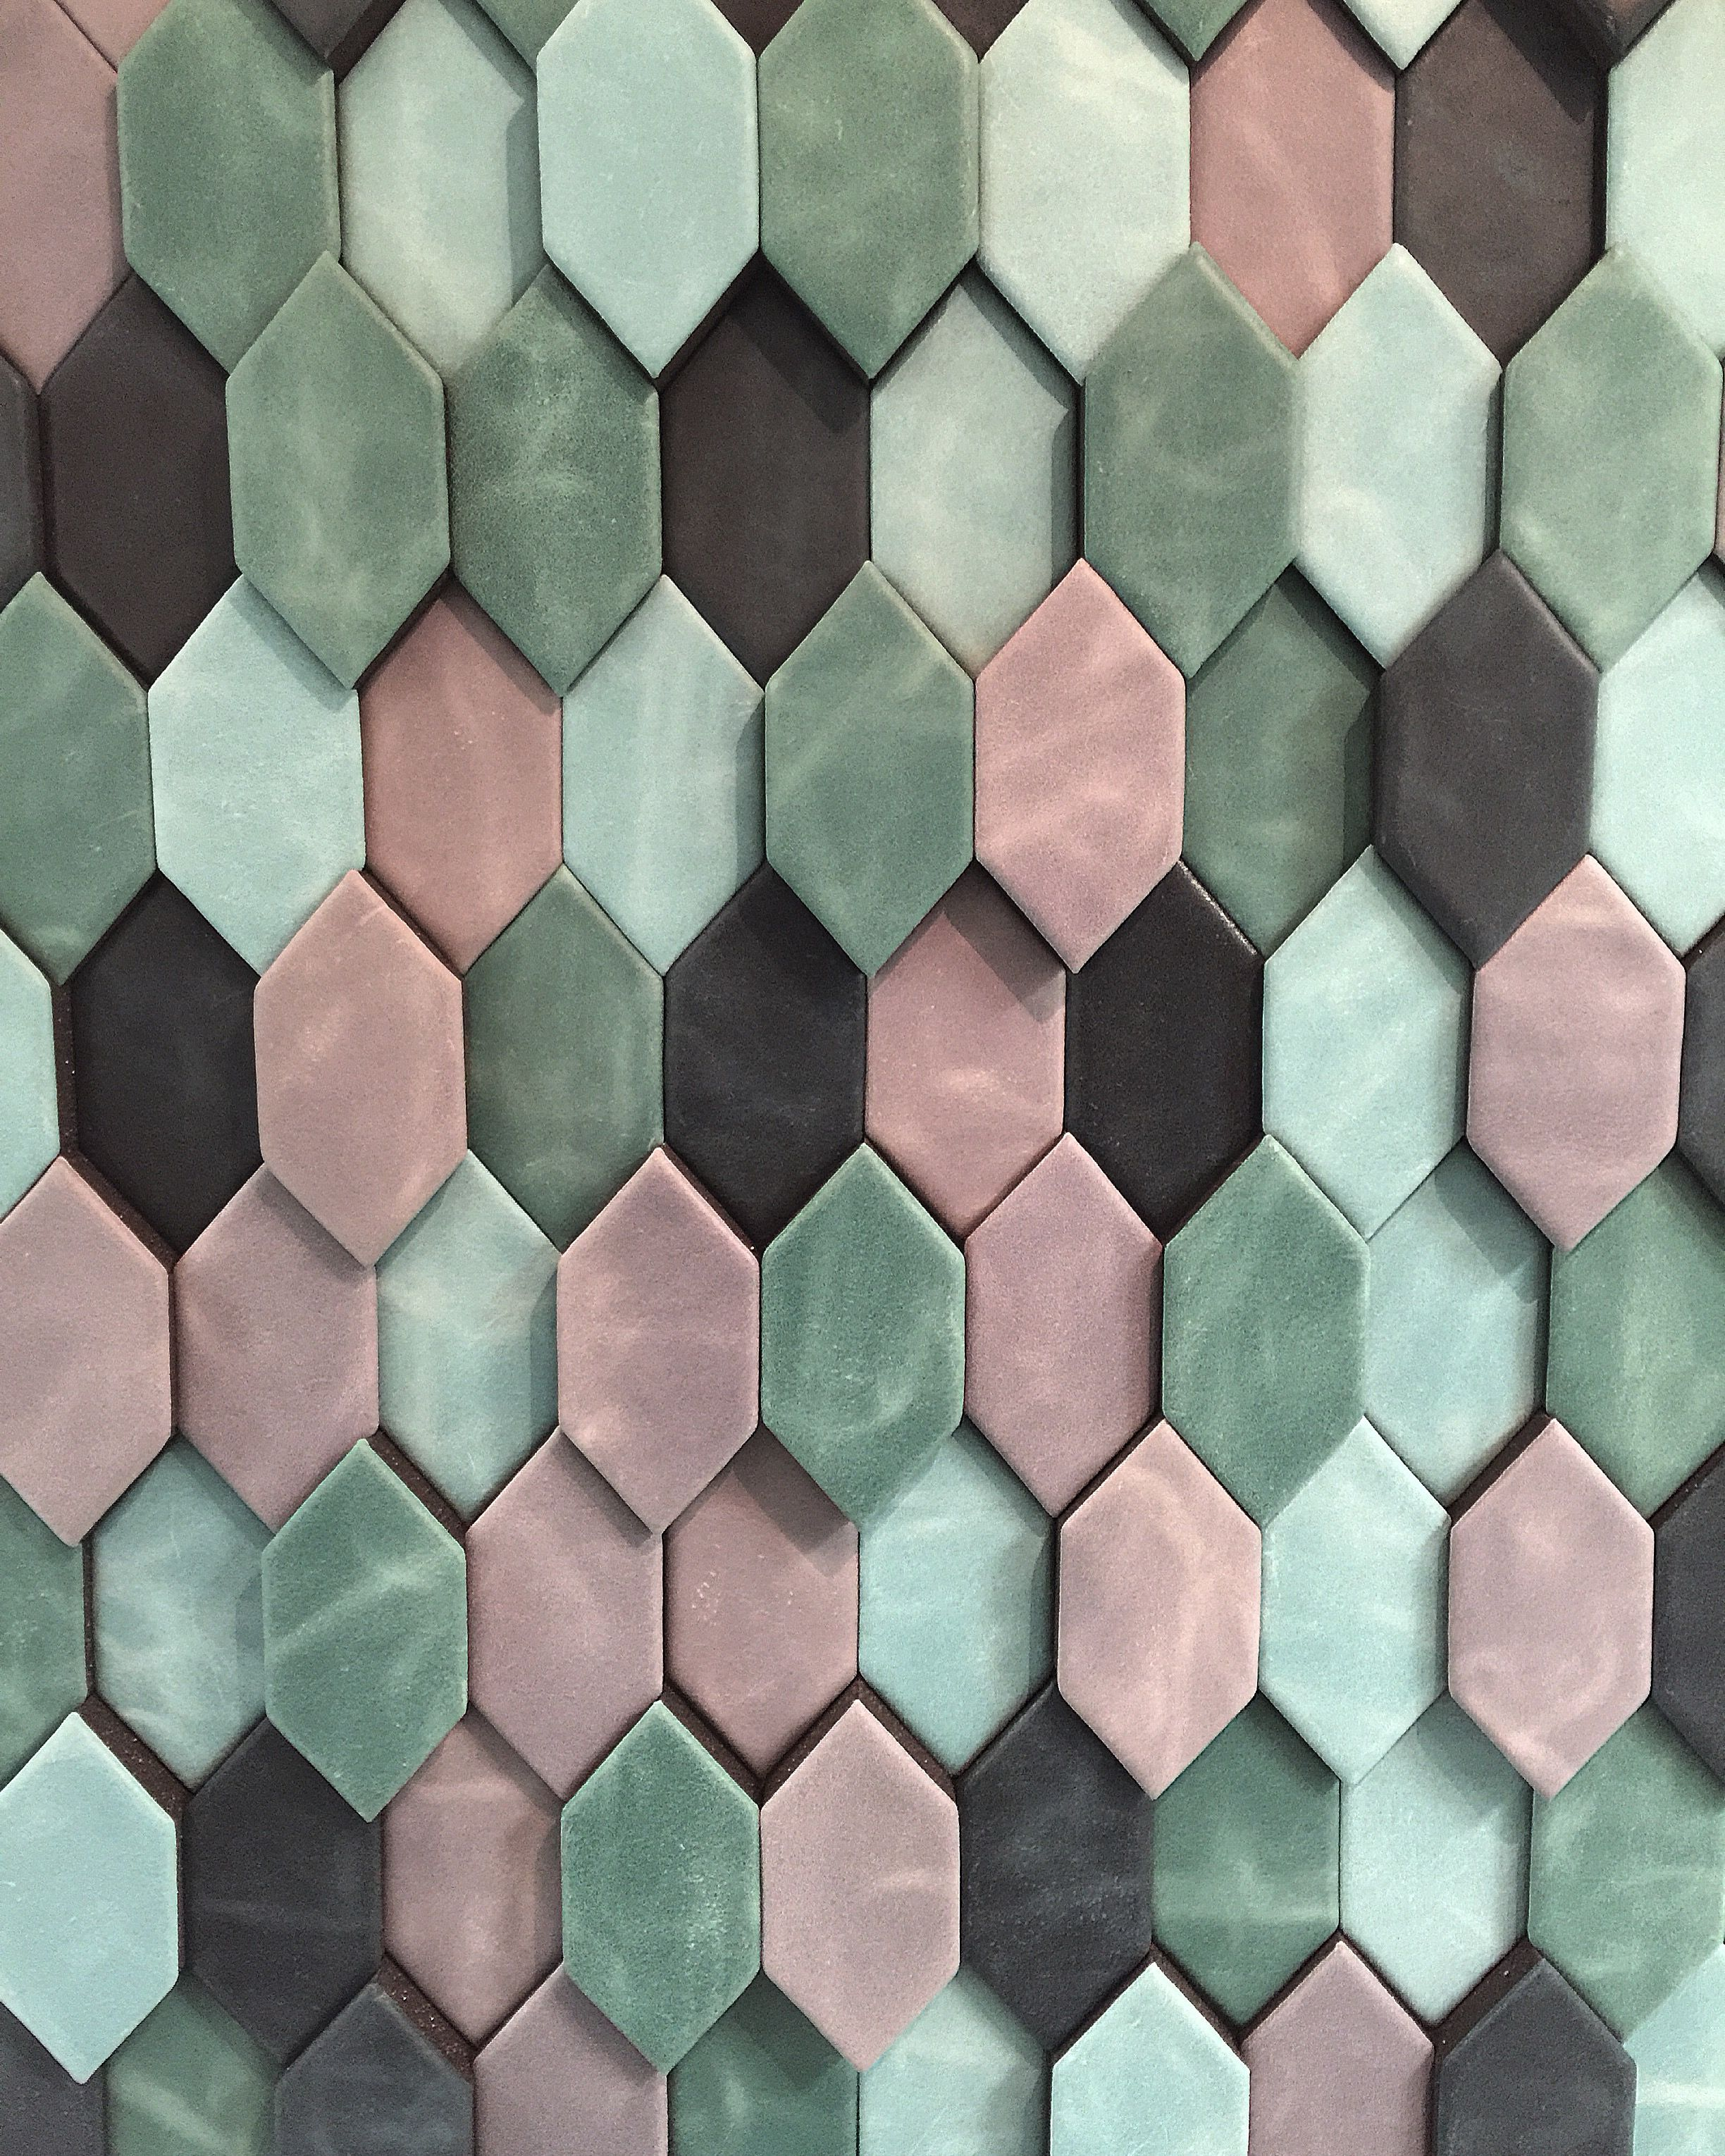 3D leather wall Made by Cuir au Carré www.cuiraucarre.com ...